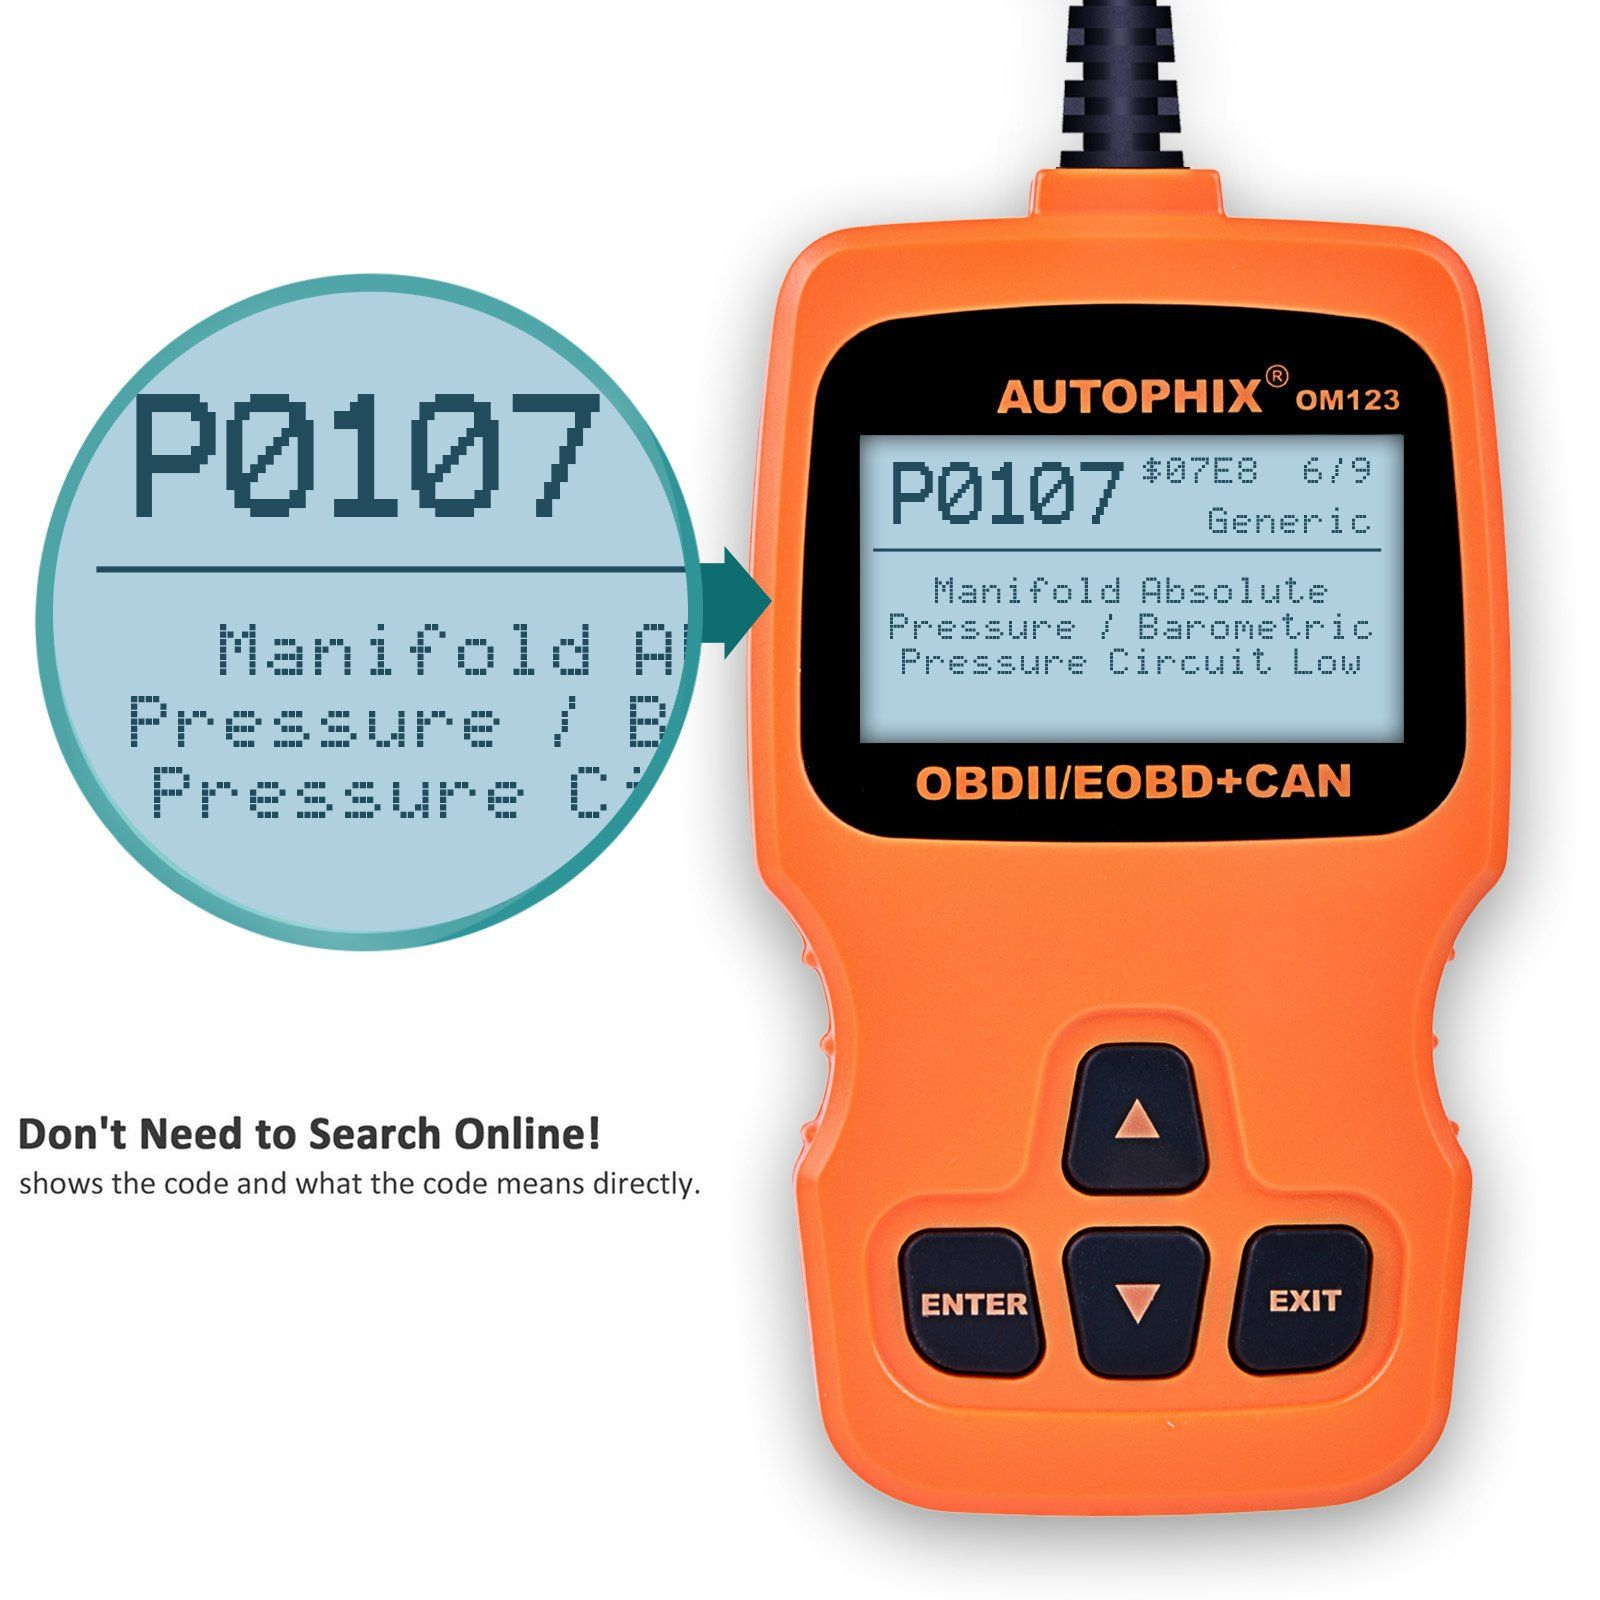 AUTOPHIX OBD2 Scanner OM123 Enhanced Automotive Code Reader with